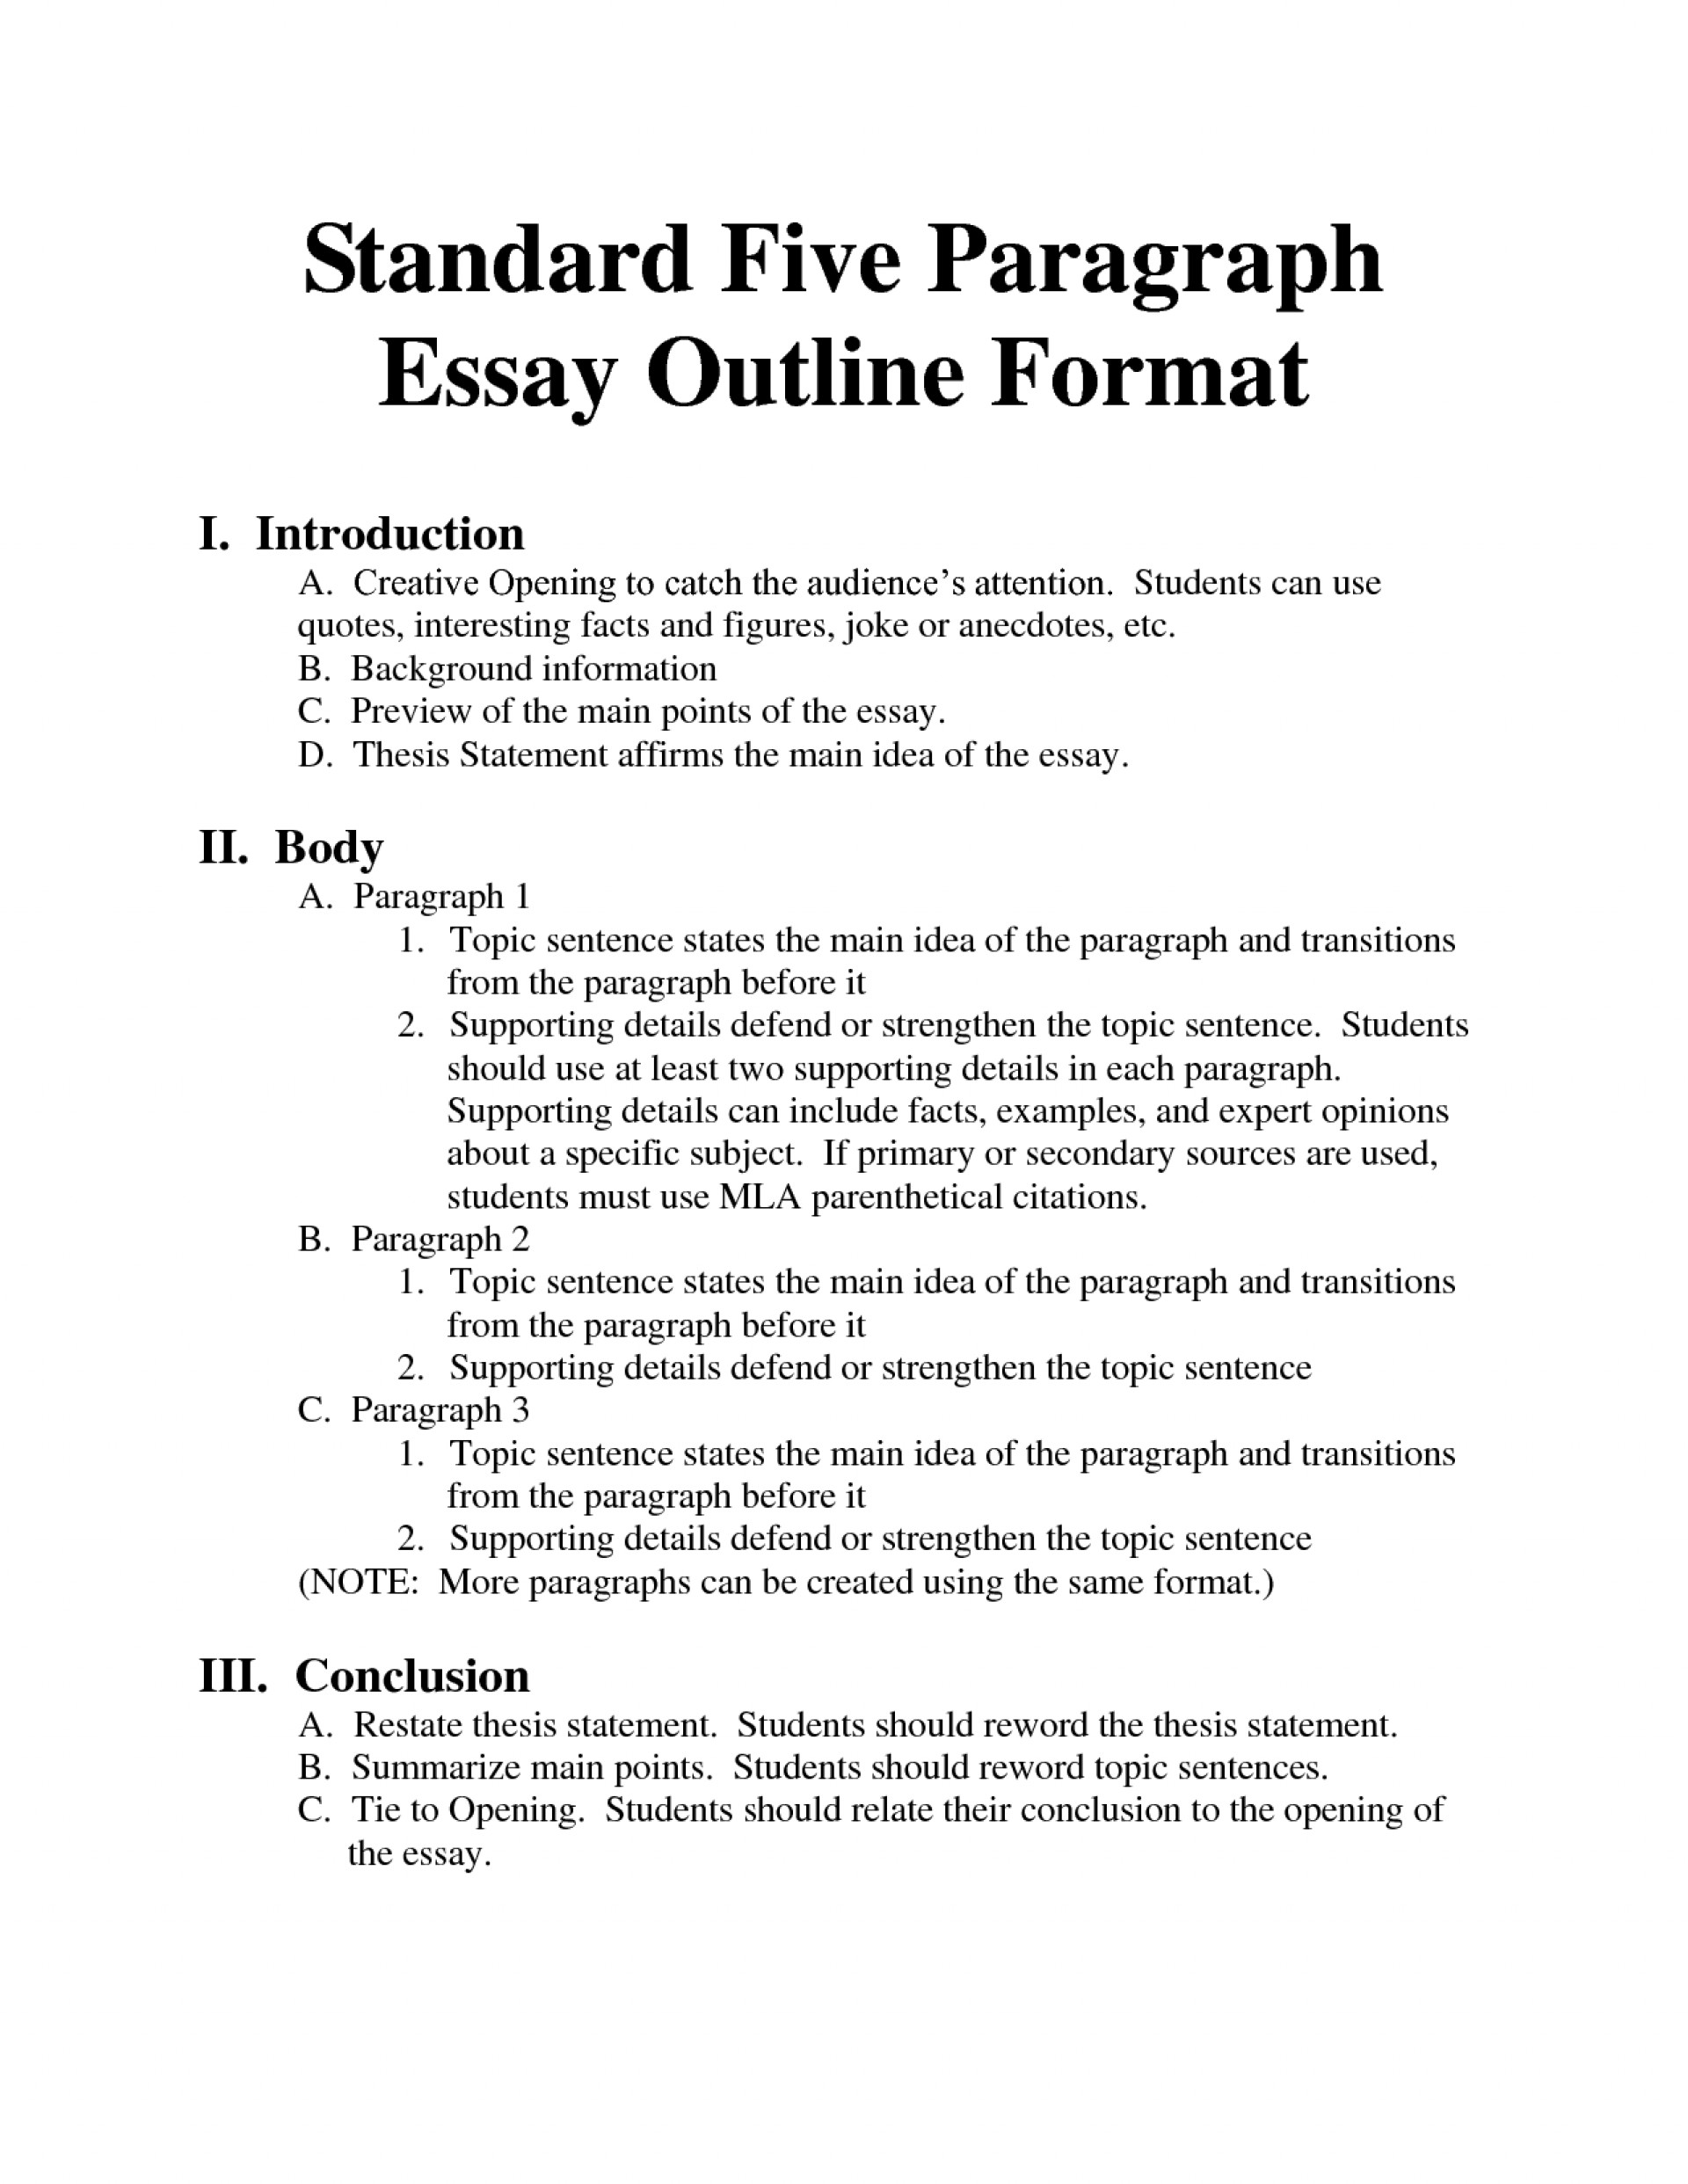 022 Easy Research Paper Topics Fantastic For High School Students Reddit To Write About 1920